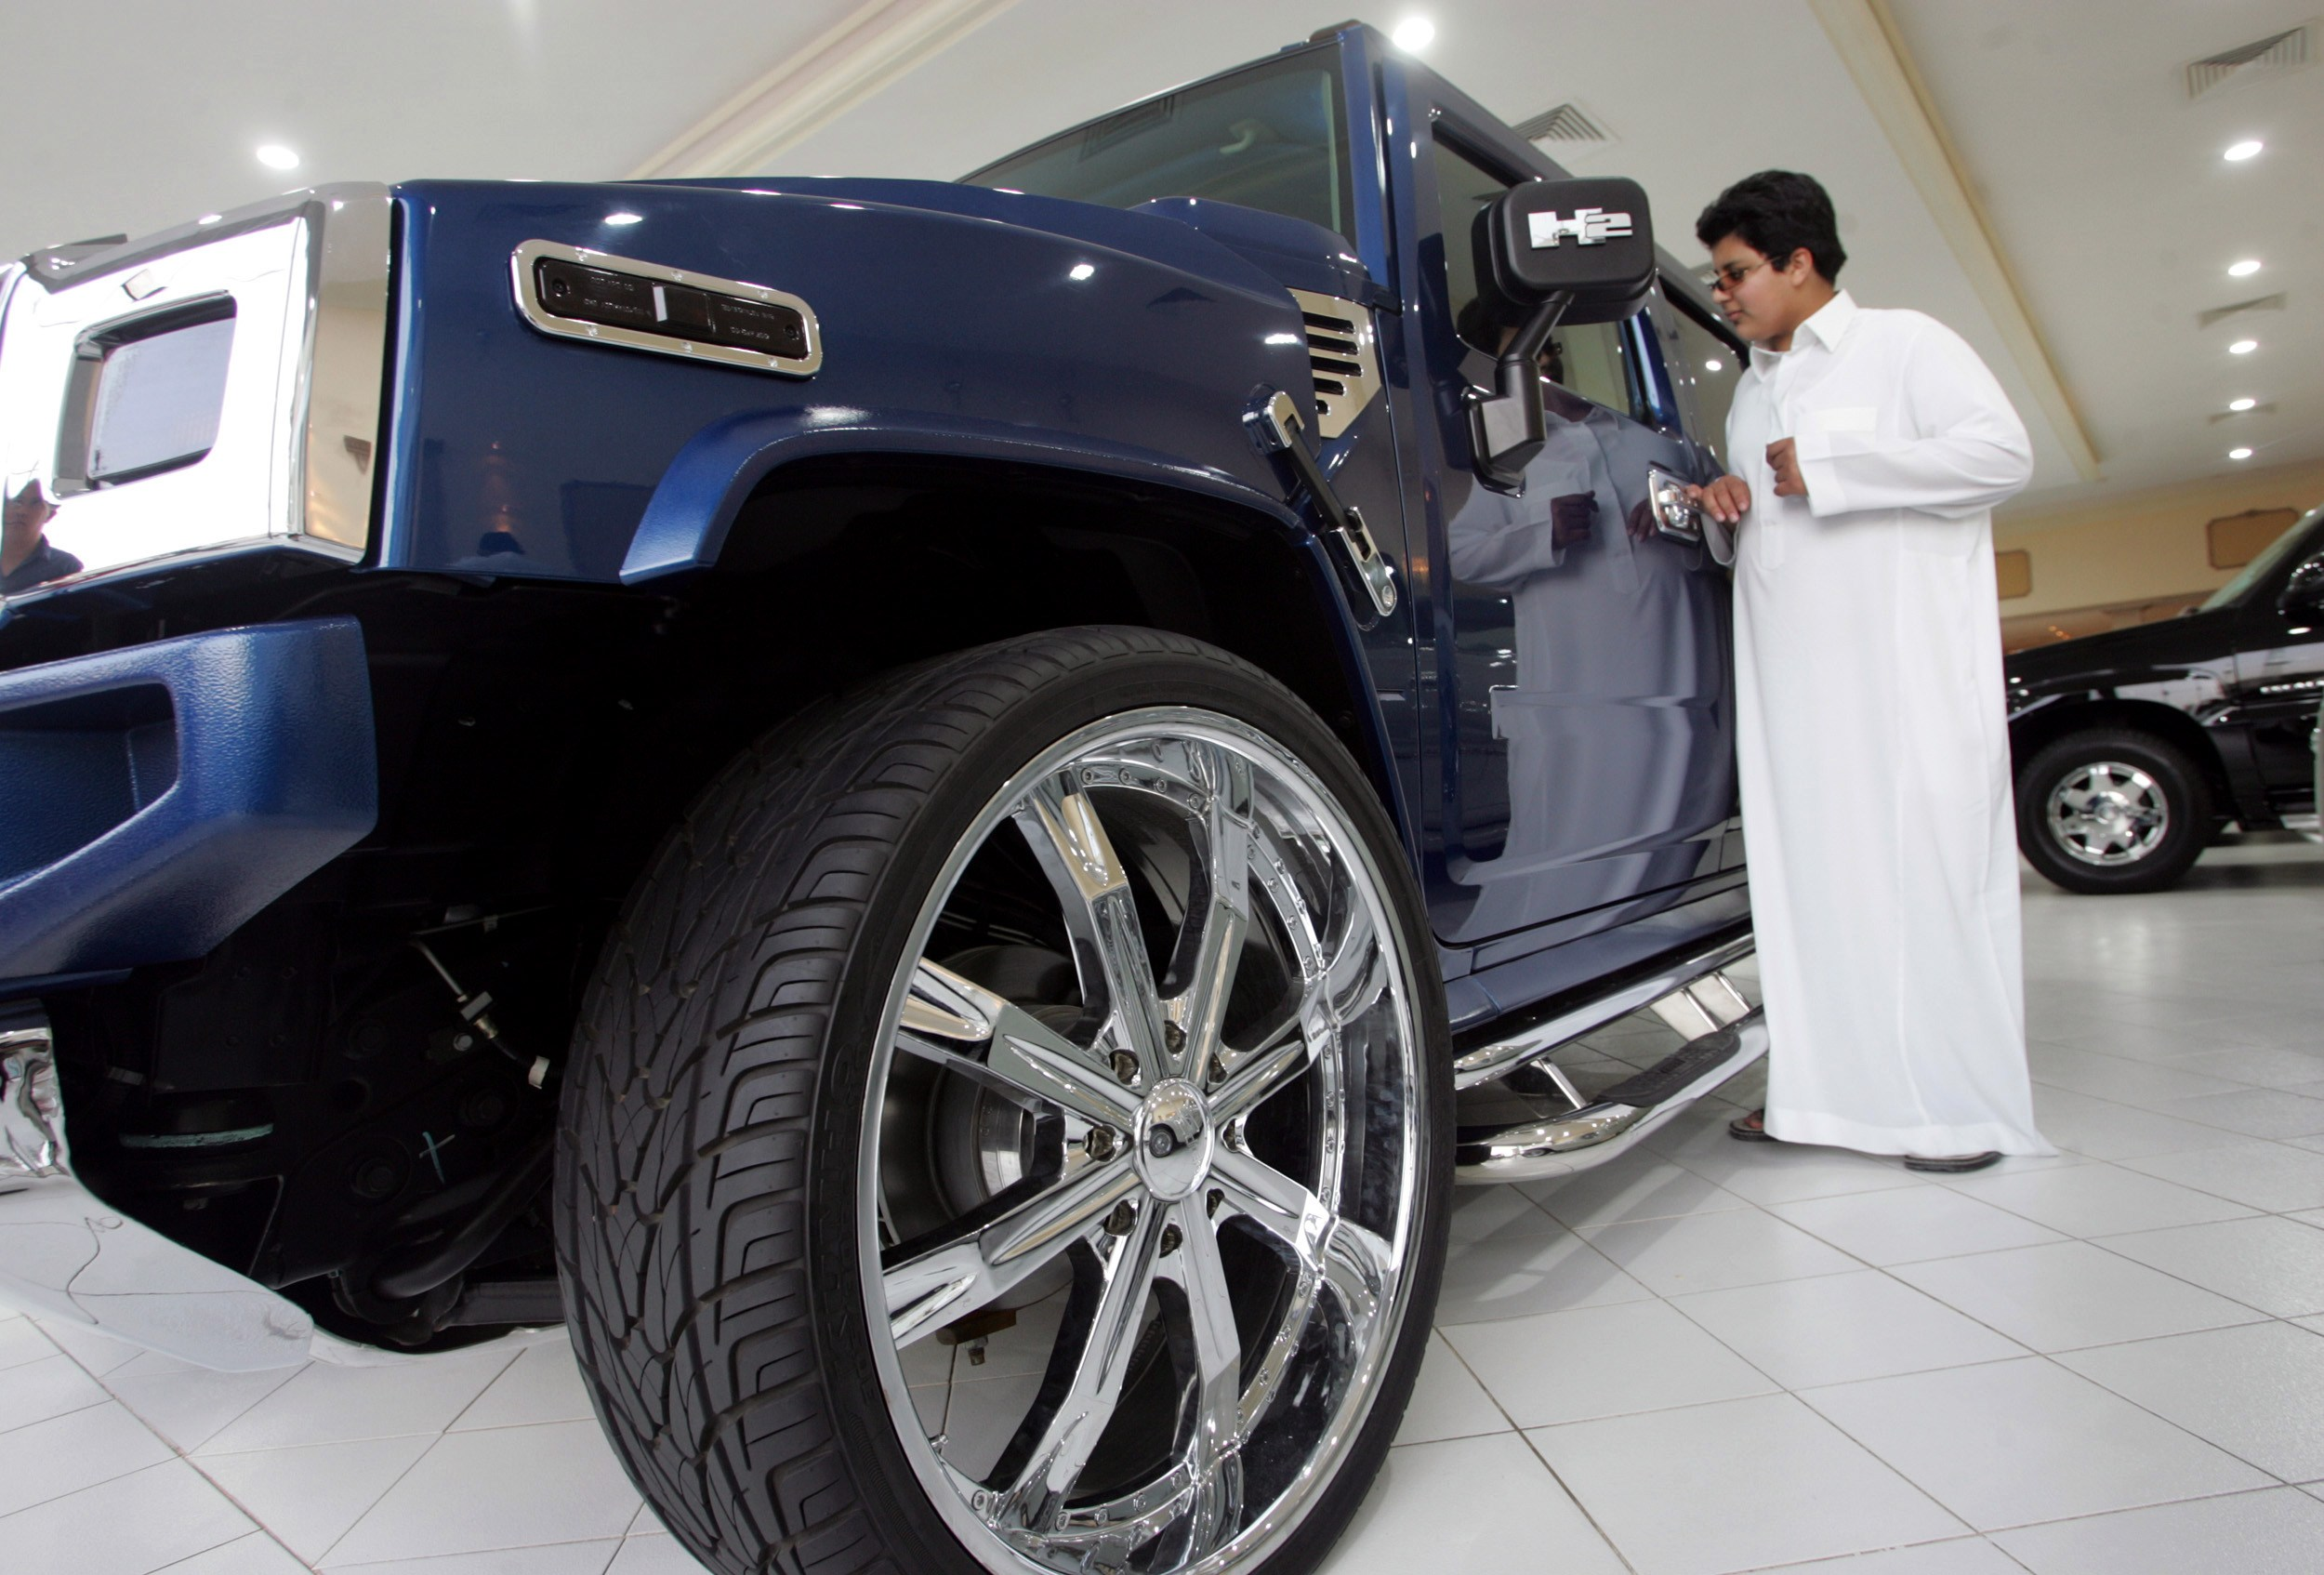 A Saudi man looks at a car on display at a showroom in Riyadh, Saudi Arabia in this March 20, 2005 file photo. With inflation rising across the Gulf A...